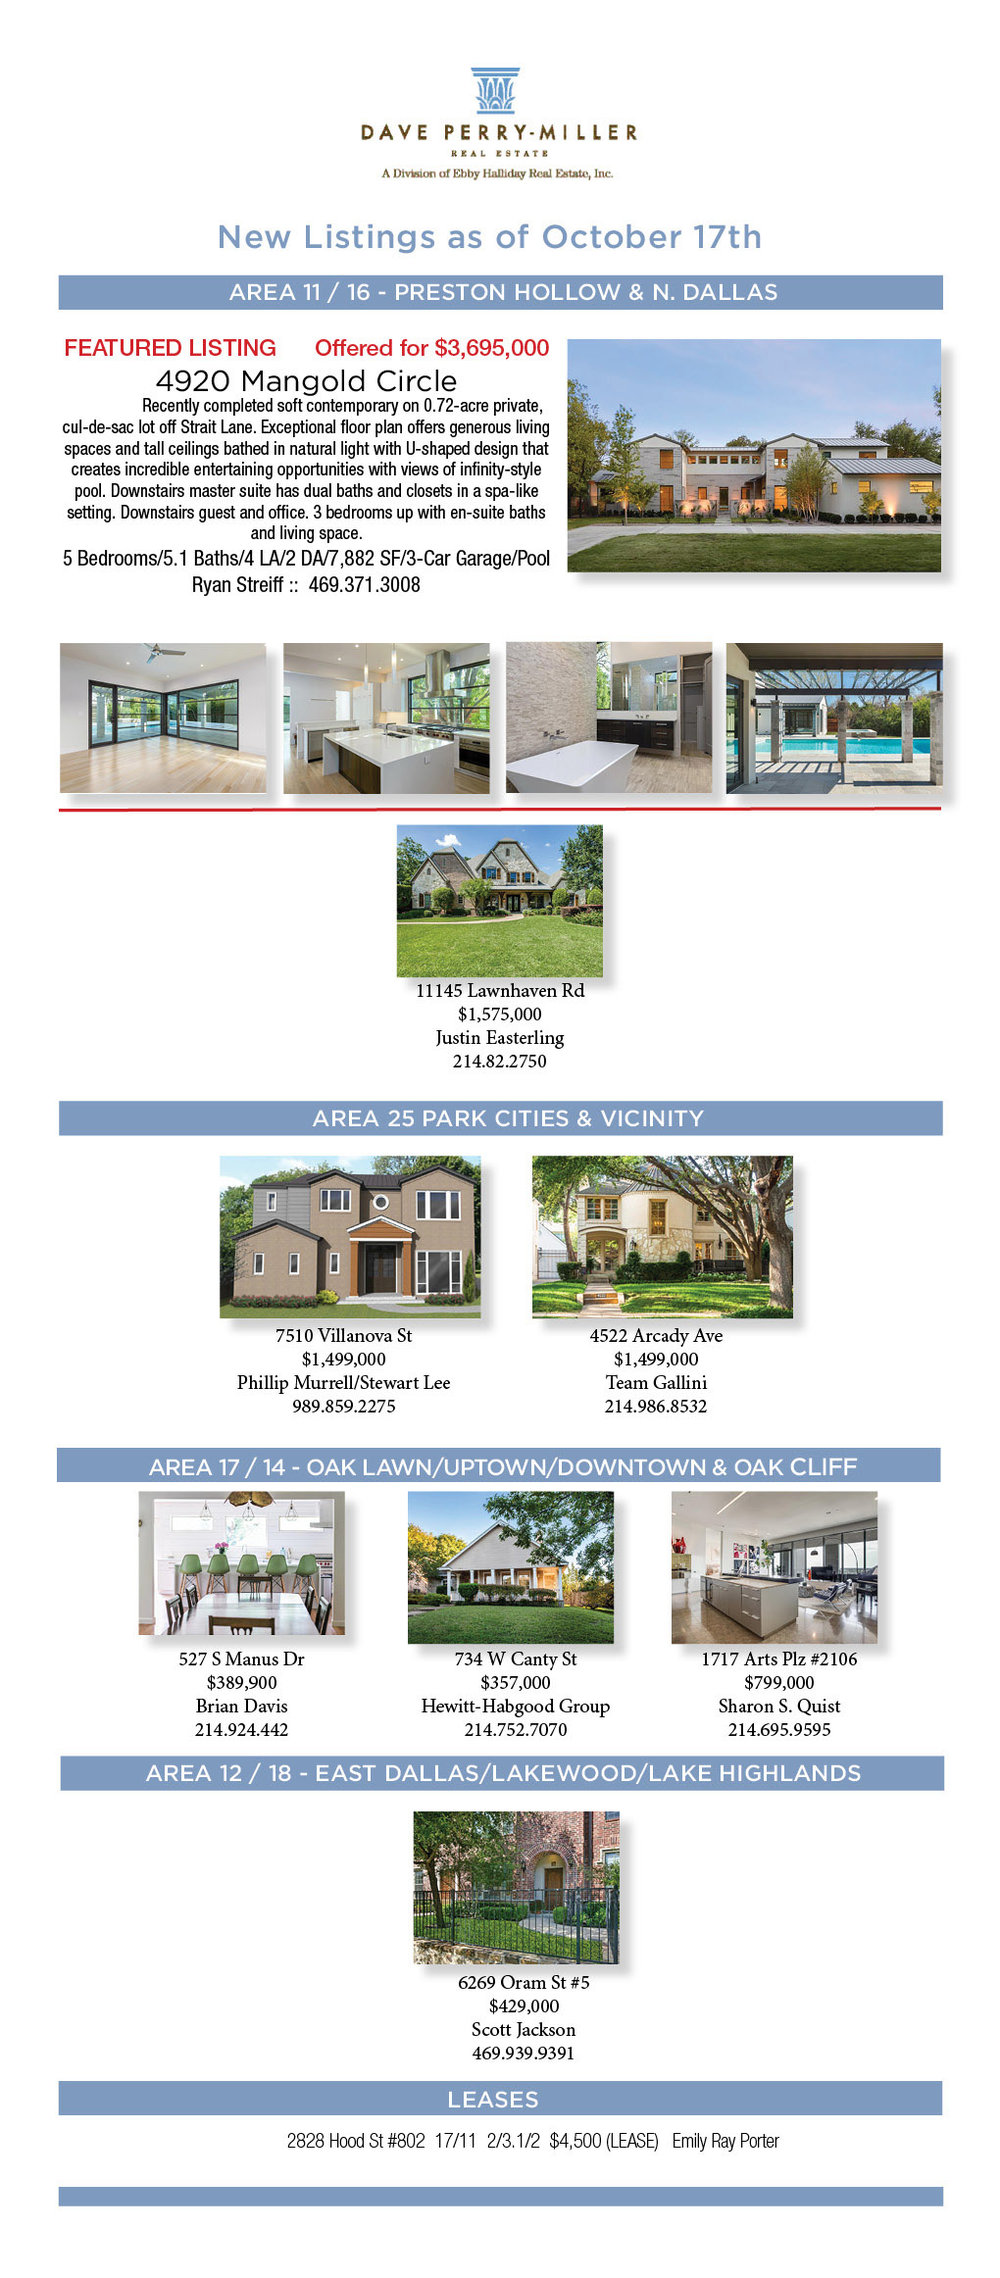 Dave Perry Miller Real Estate New Listings Tuesday October 17th